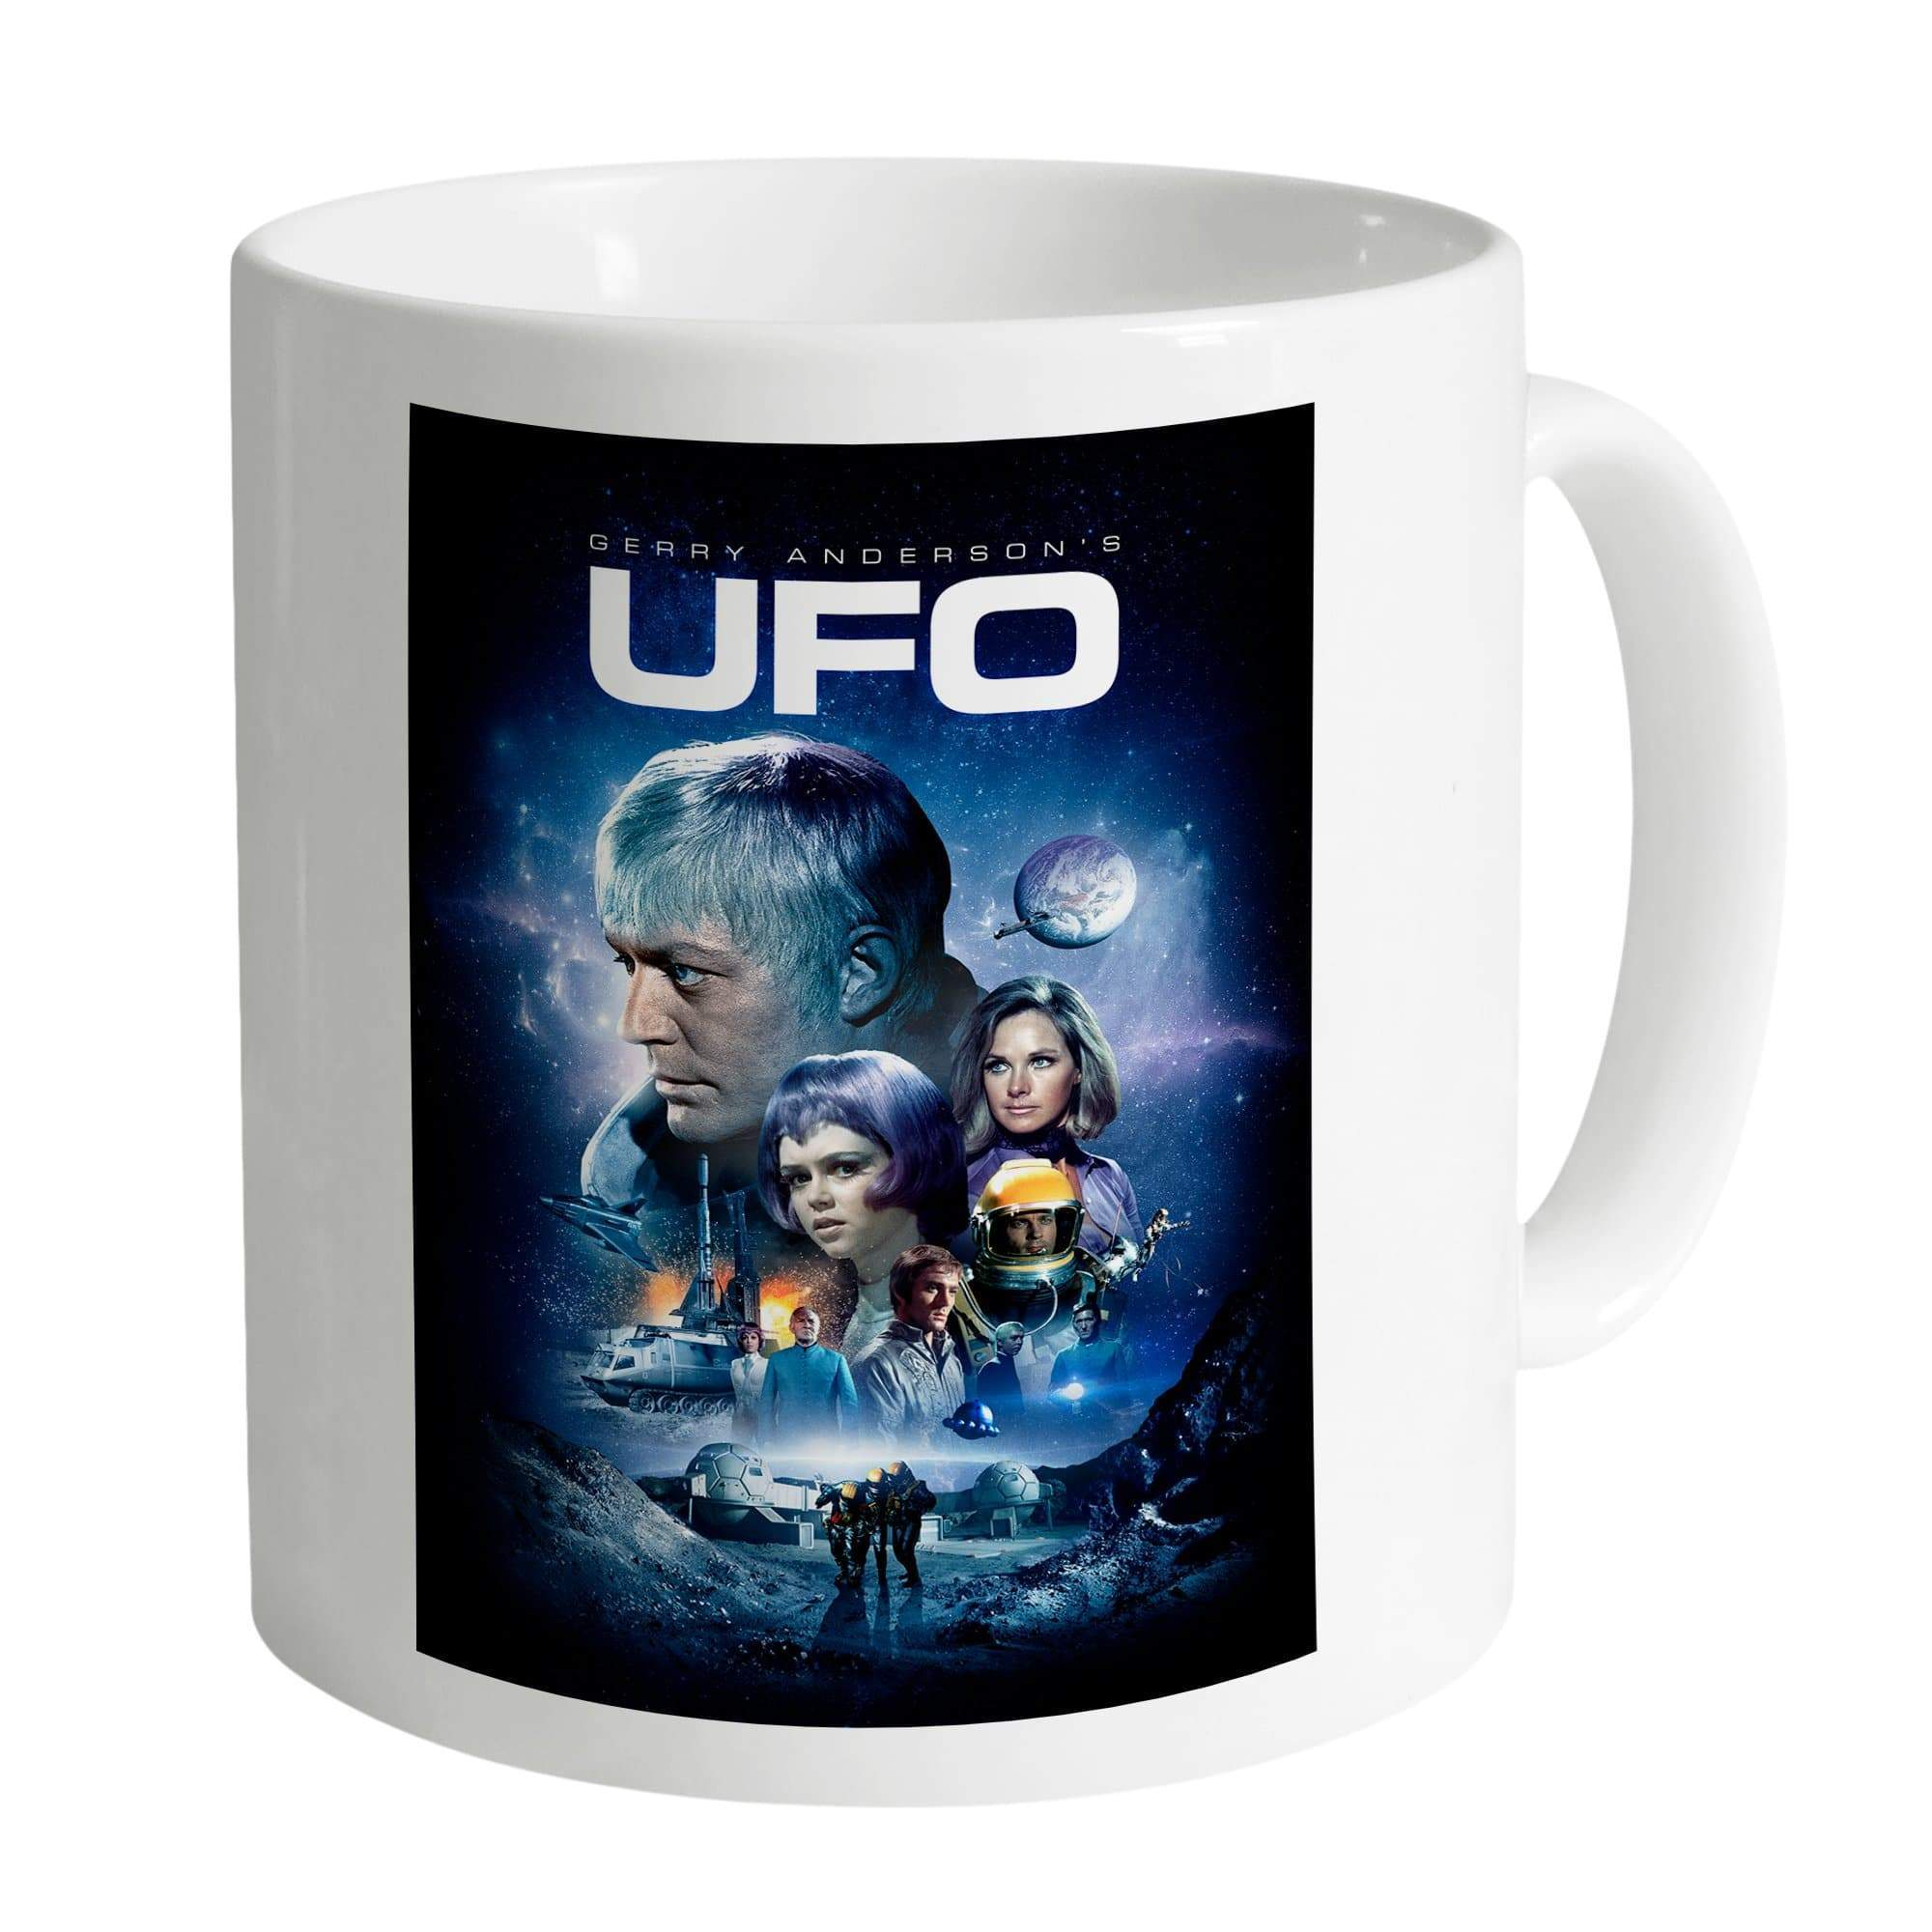 UFO White Mug [Official & Exclusive] - The Gerry Anderson Store